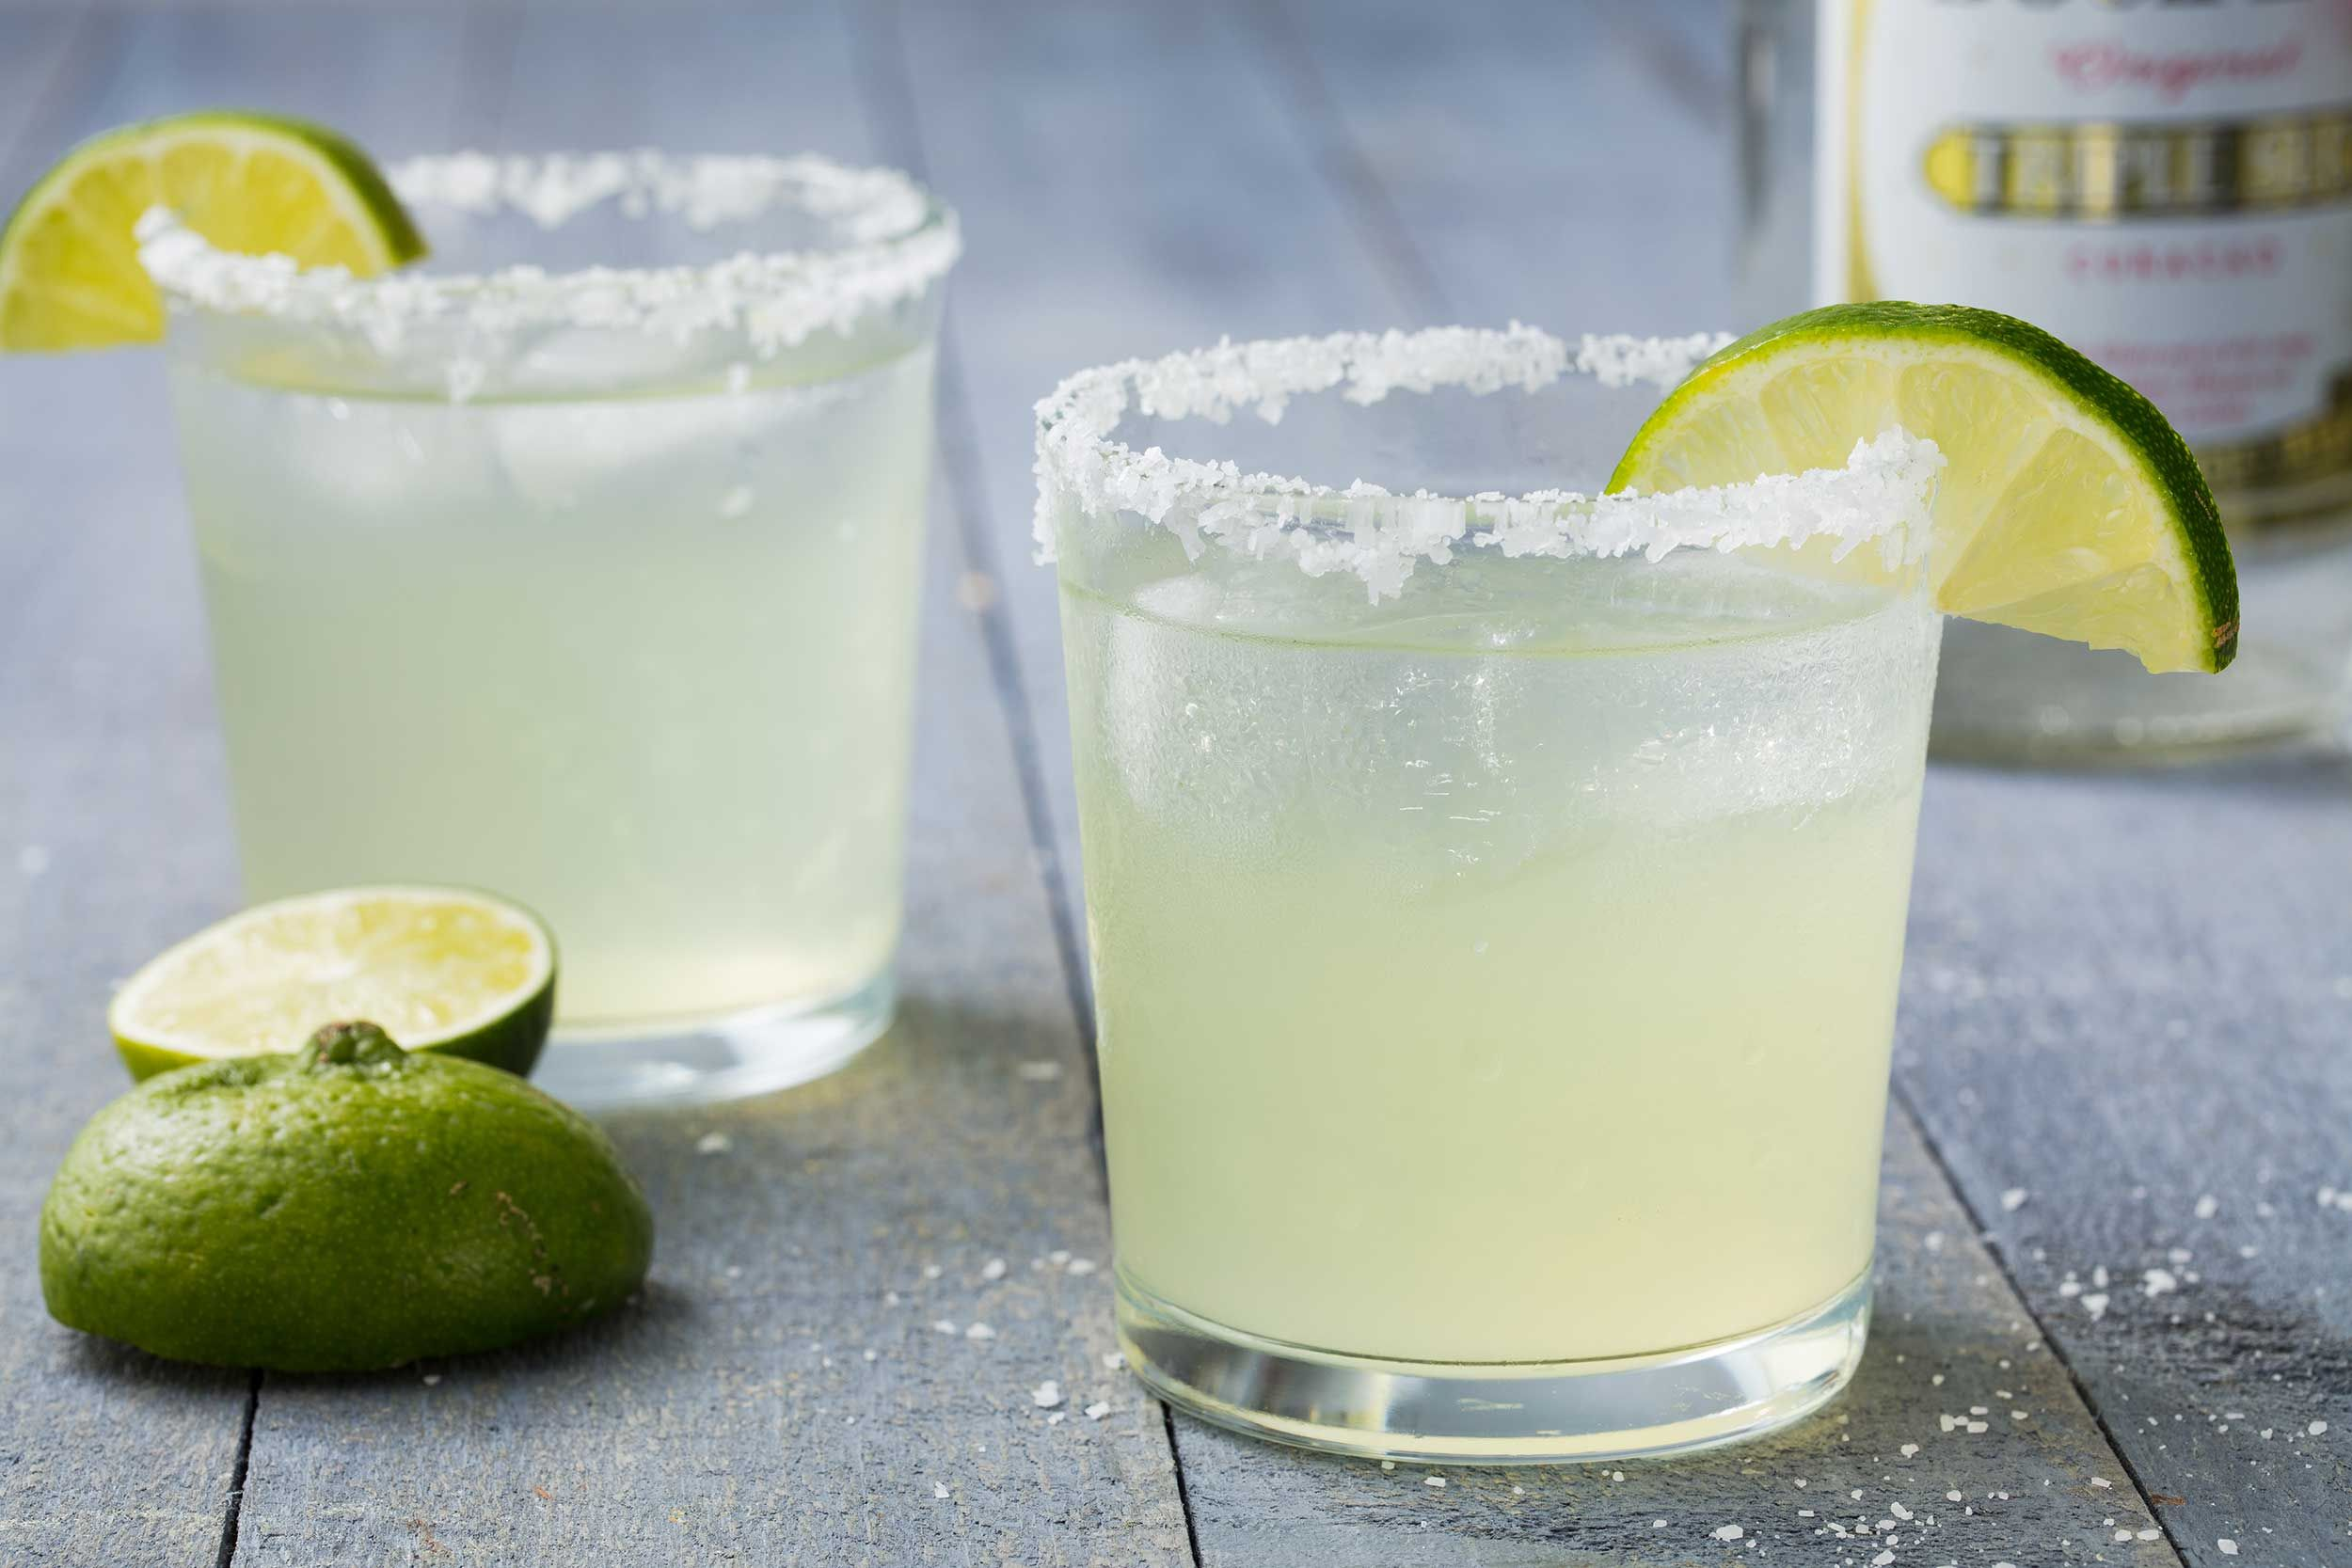 Best Margarita Recipe - How To Make Margarita